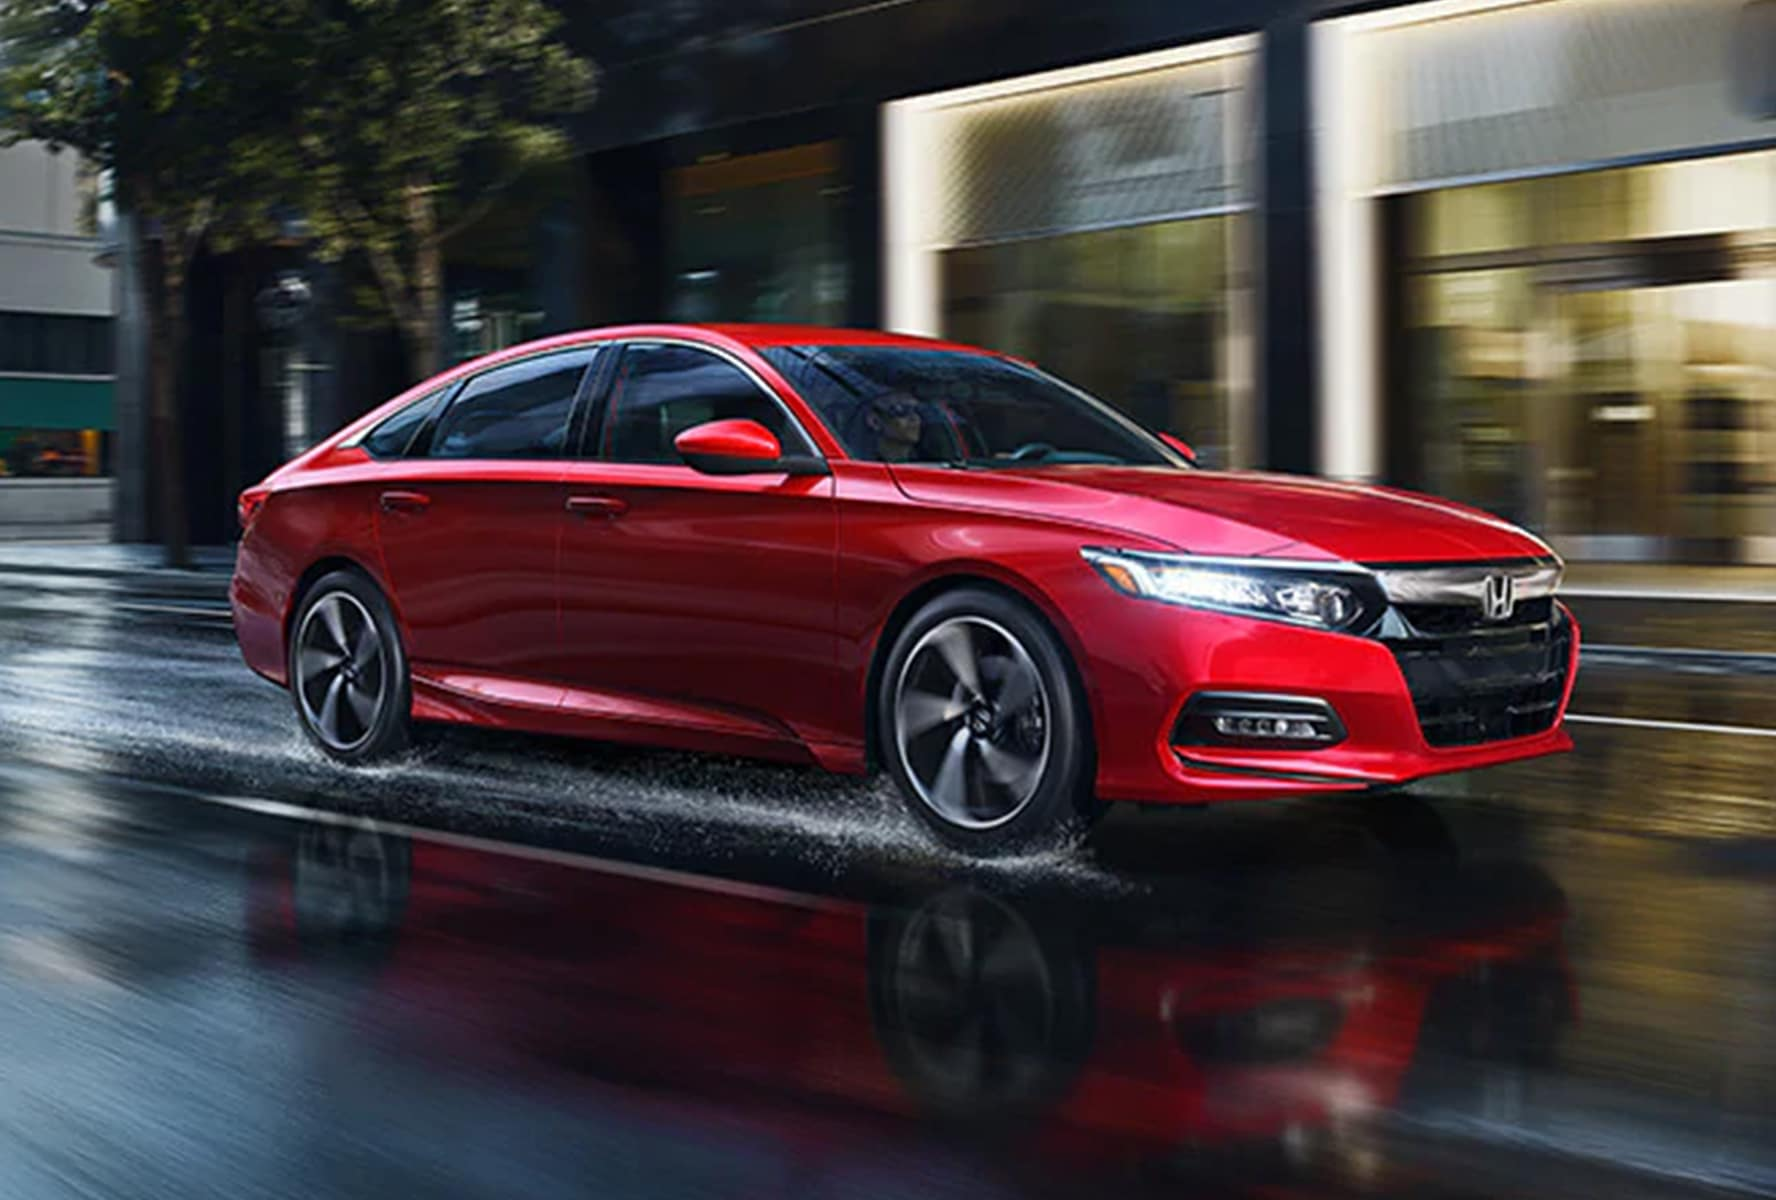 New Honda Vehicles near Elk Grove Village, IL